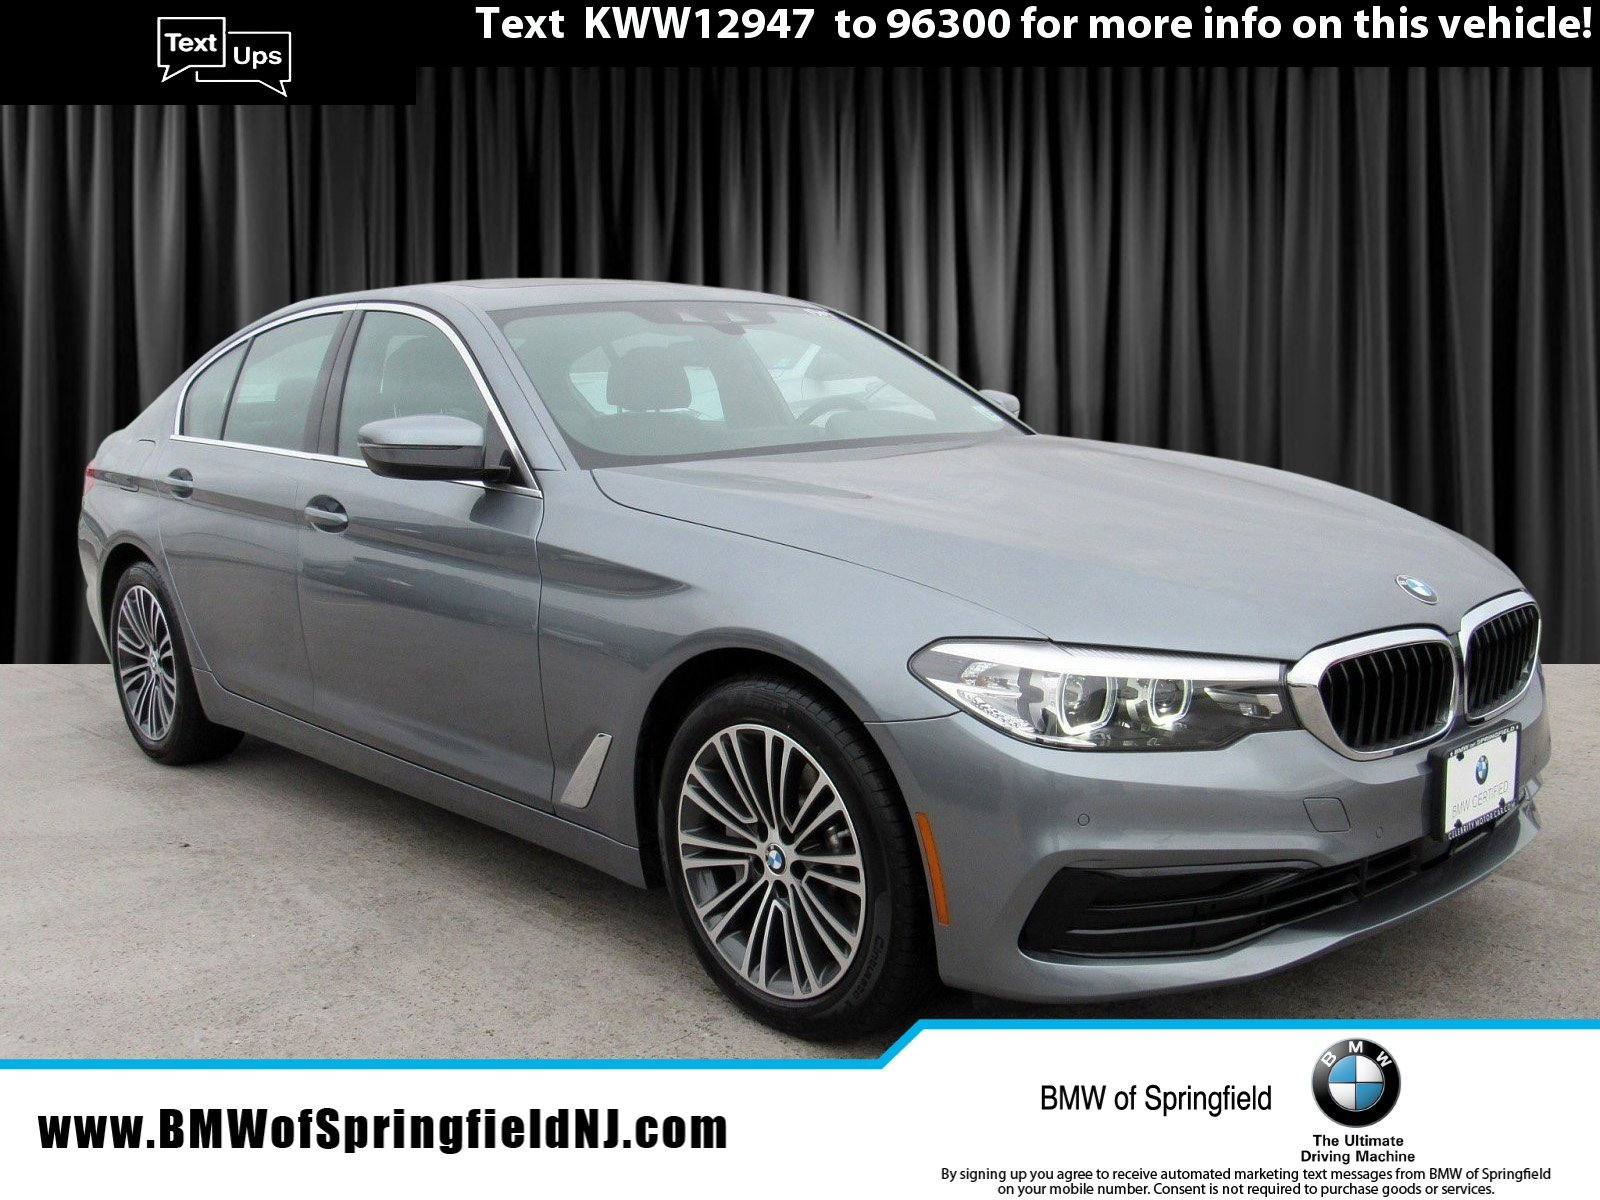 2019 BMW 530i xDRIVE -- CERTIFIED PRE-OWNED